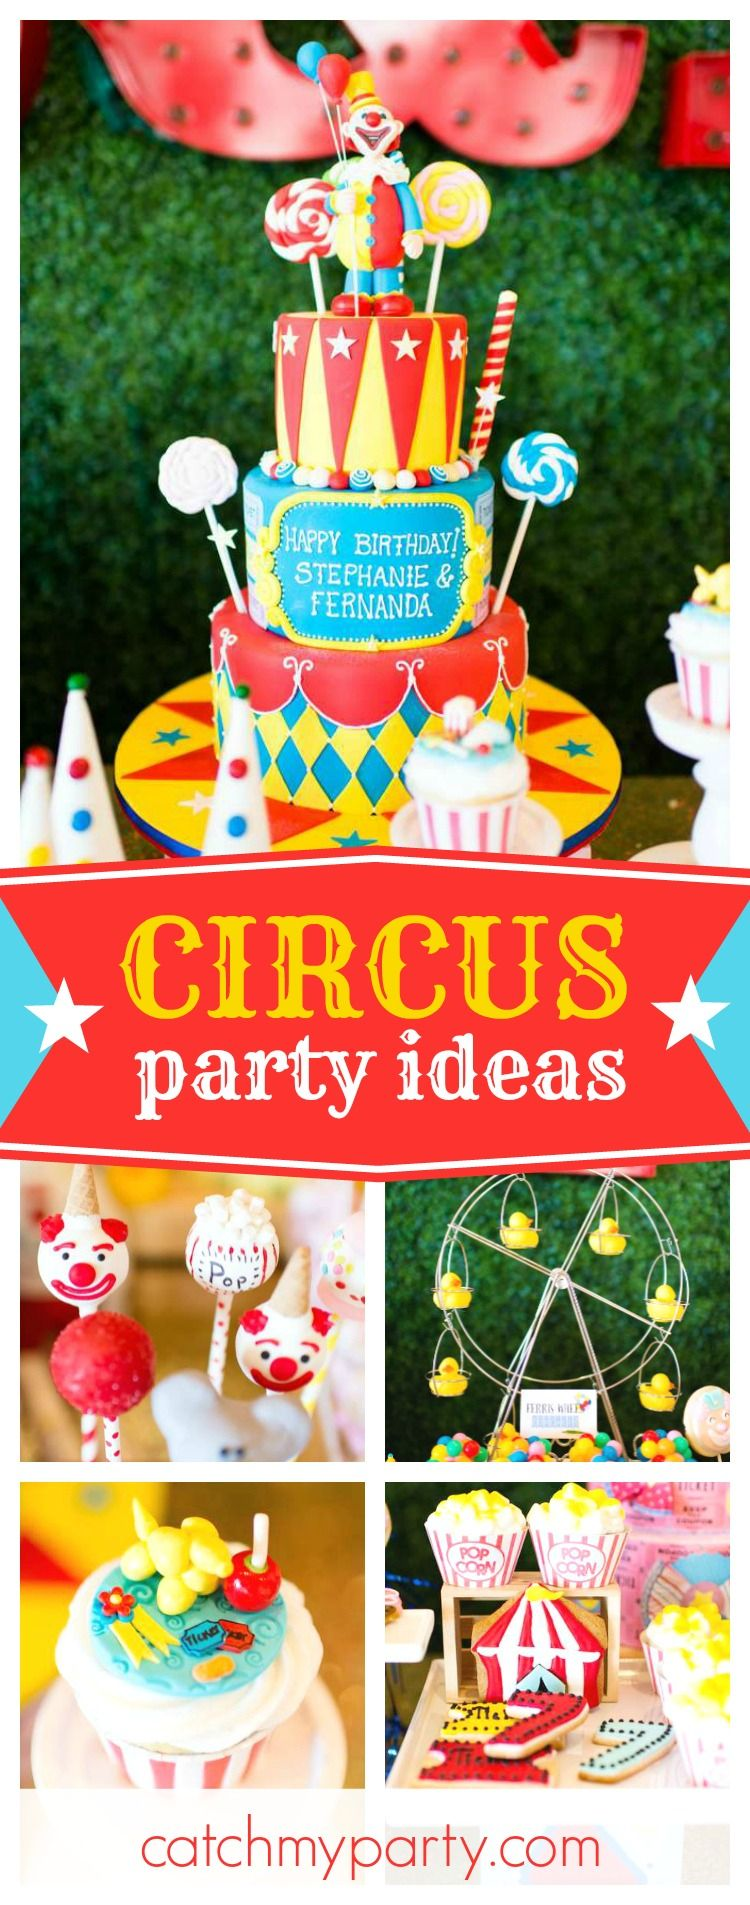 Check Out The More Like This: Check Out This Awesome Vintage Circus Birthday Party. The